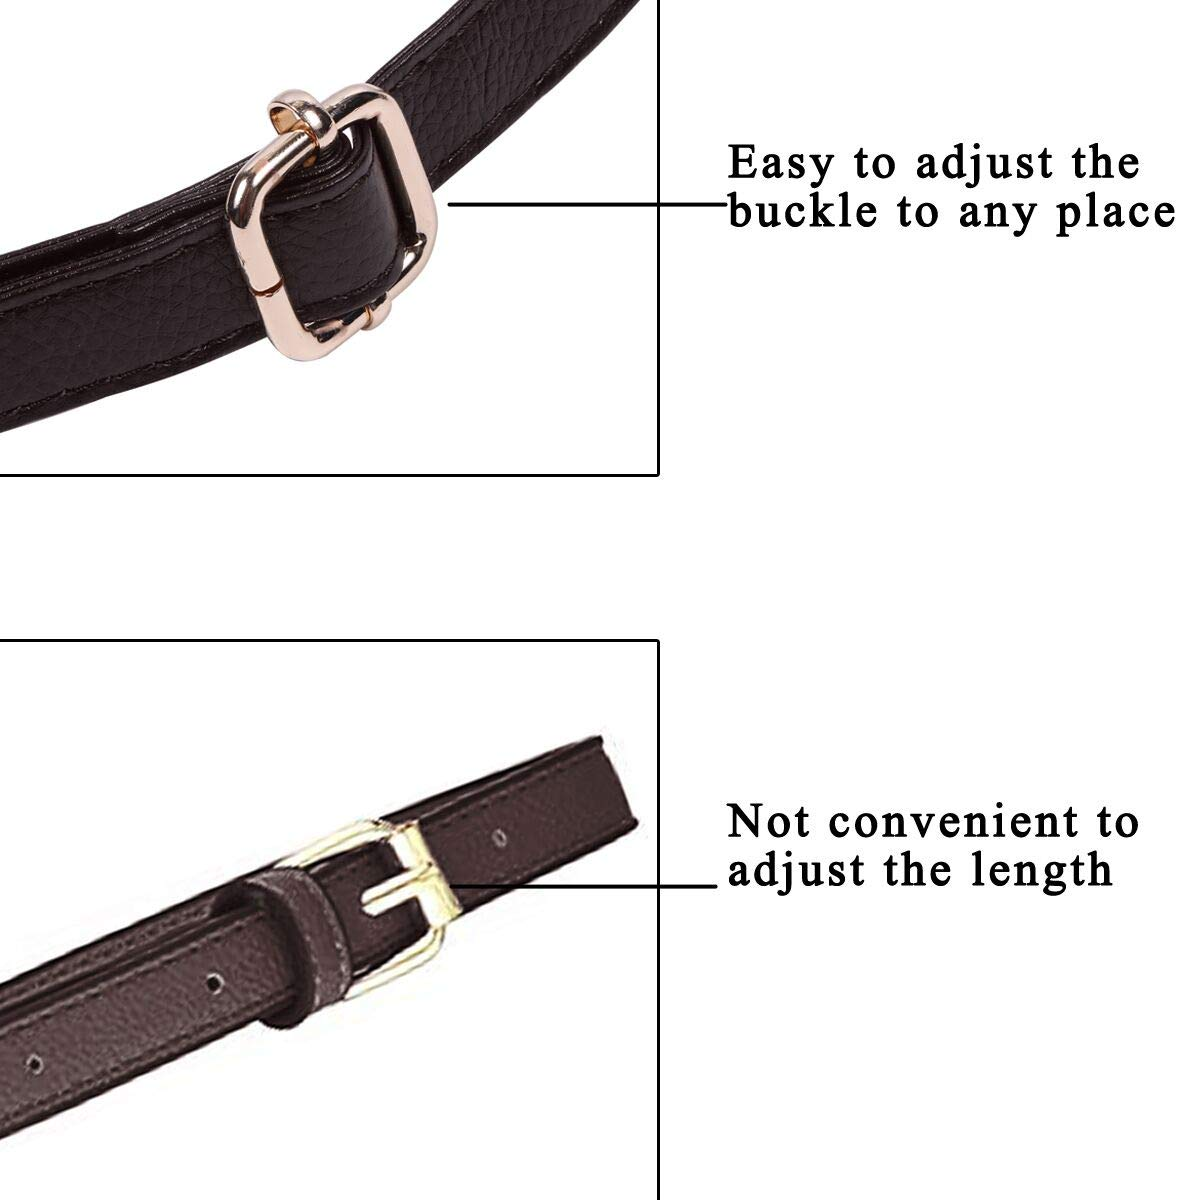 by Beaulegan Dark Brown with Silver Clasp 34-59 Inch Long 0.8 Inch Wide Beaulegan Purse Strap Replacement Microfiber Leather Adjustable for Crossbody Bag or Handbag